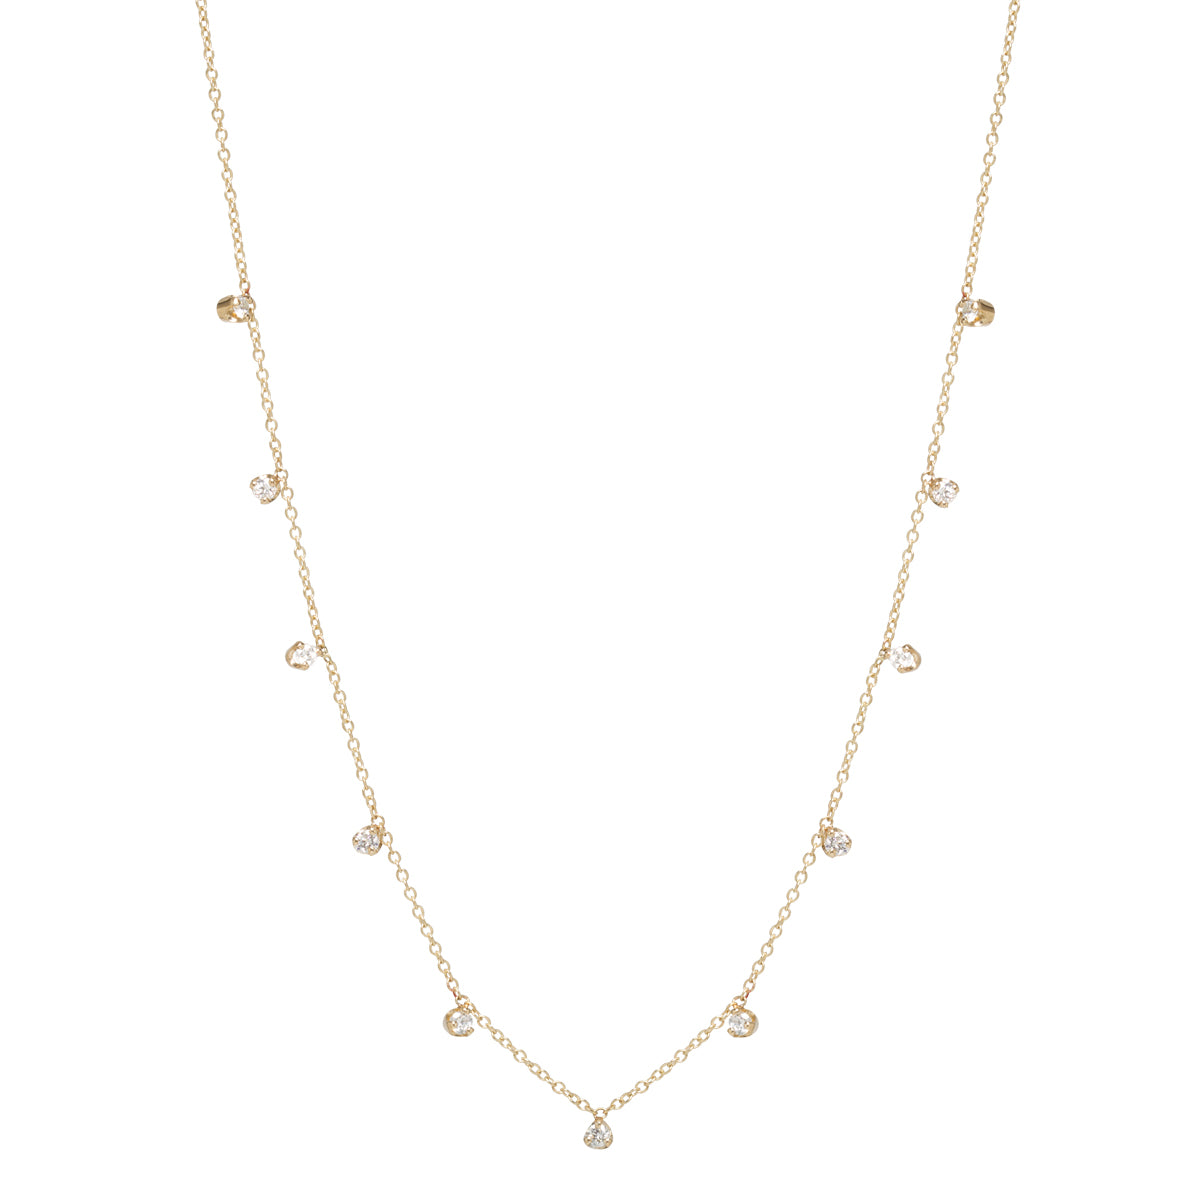 14k 11 prong set diamonds station necklace